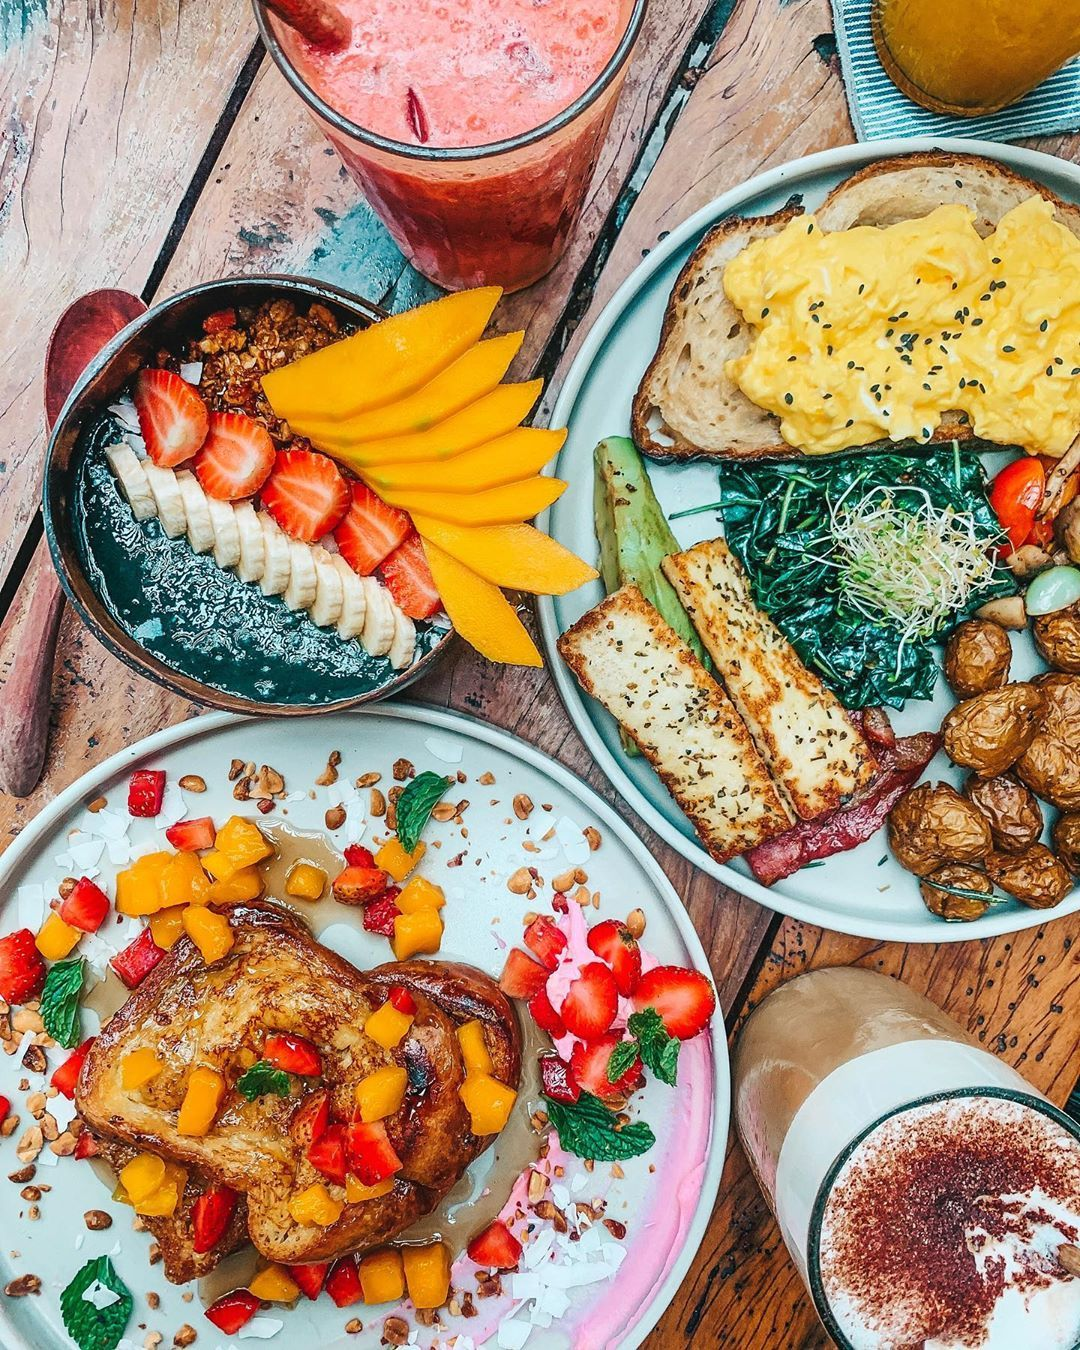 B R E A K F A S T I N B A L I If The Instagrammable Breakfast In Bali Doesnt Convince You To Go Then I Dont Know What W Small Meals Lunches And Dinners Food